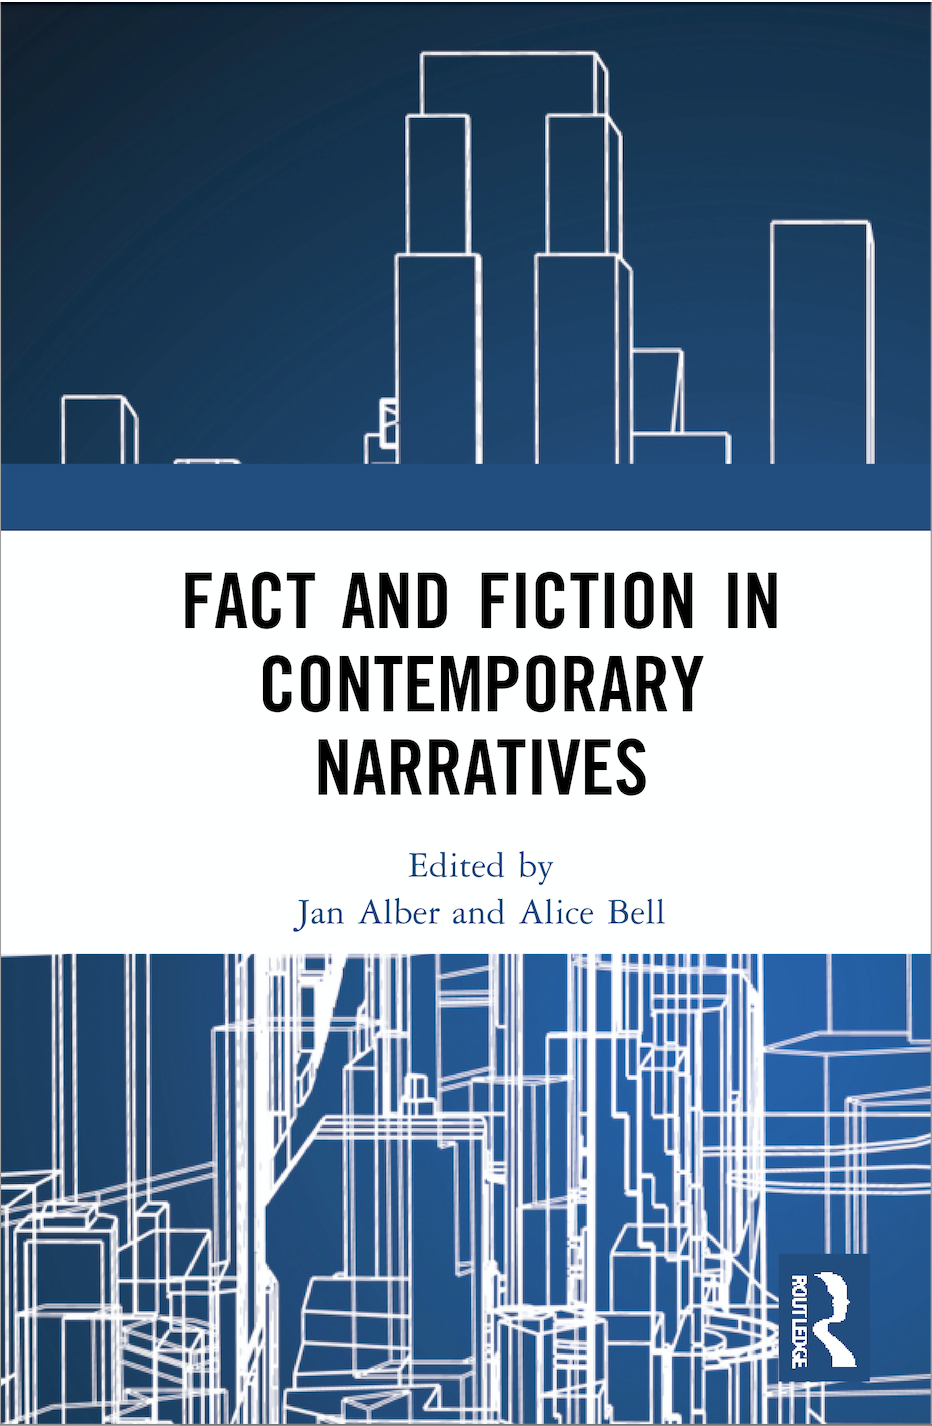 J. Alber, A. Bell (ed.). Fact and Fiction in Contemporary Narratives